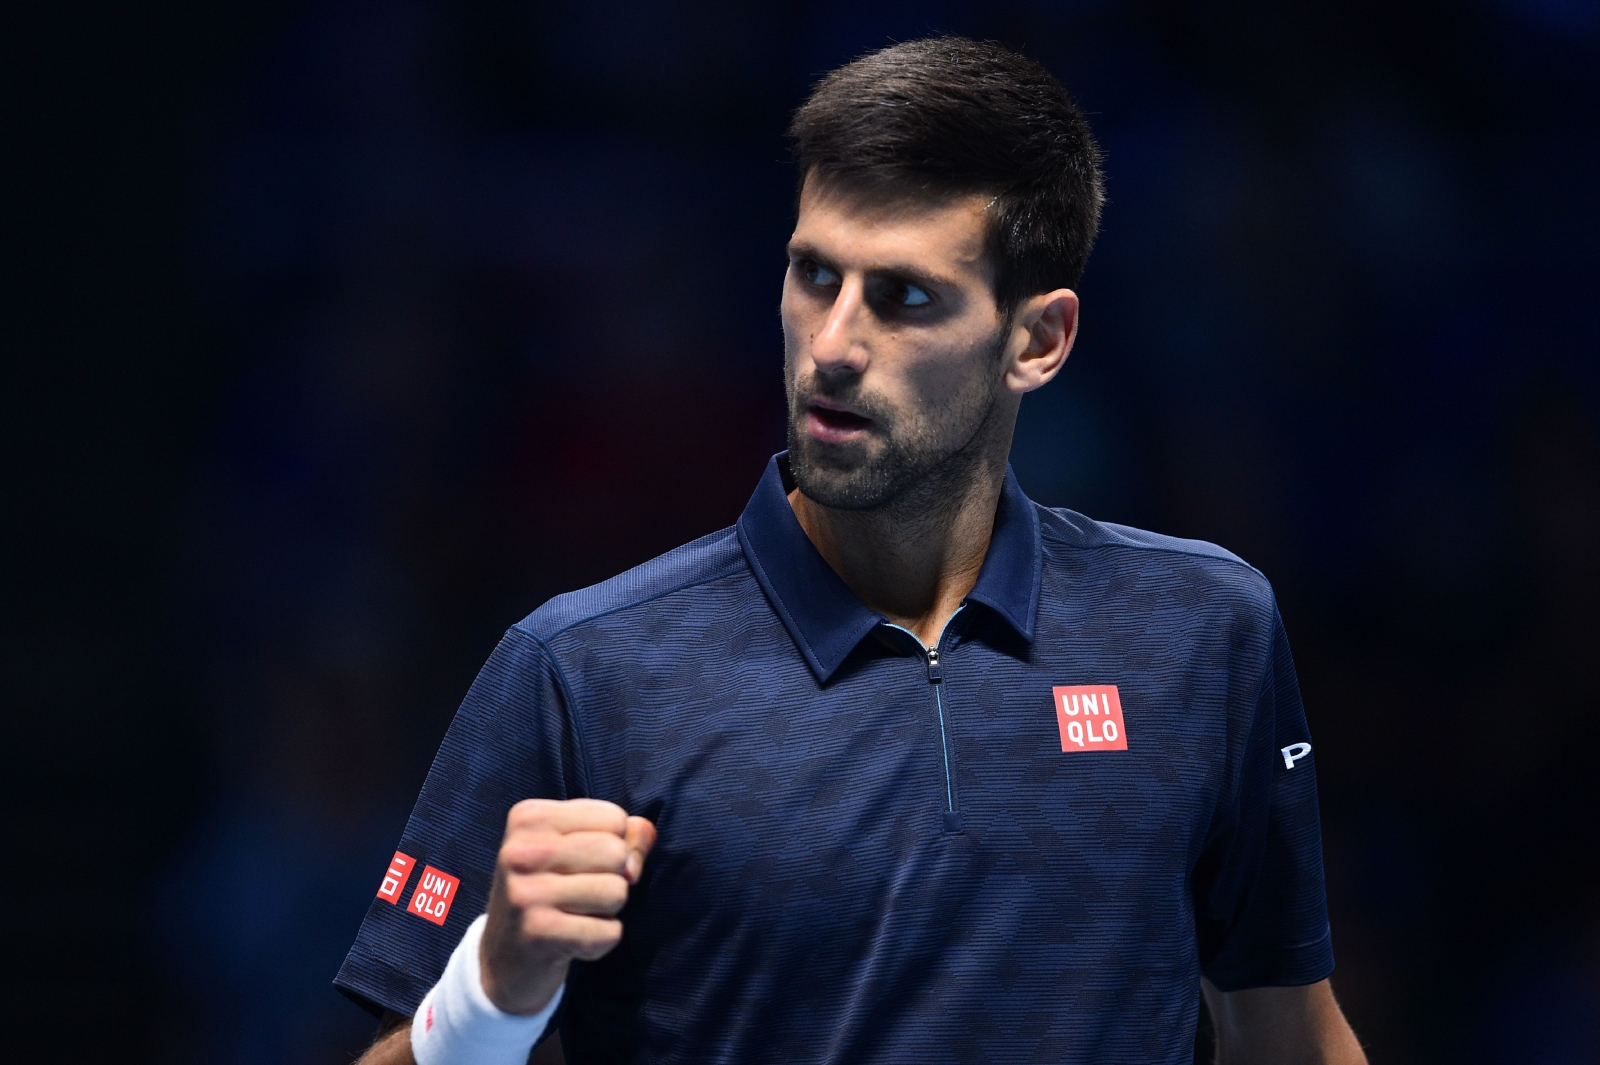 novak djokovic Novak djokovic foundation develops early childhood education projects in serbia and gives grants to educational initiatives with a goal to help children.